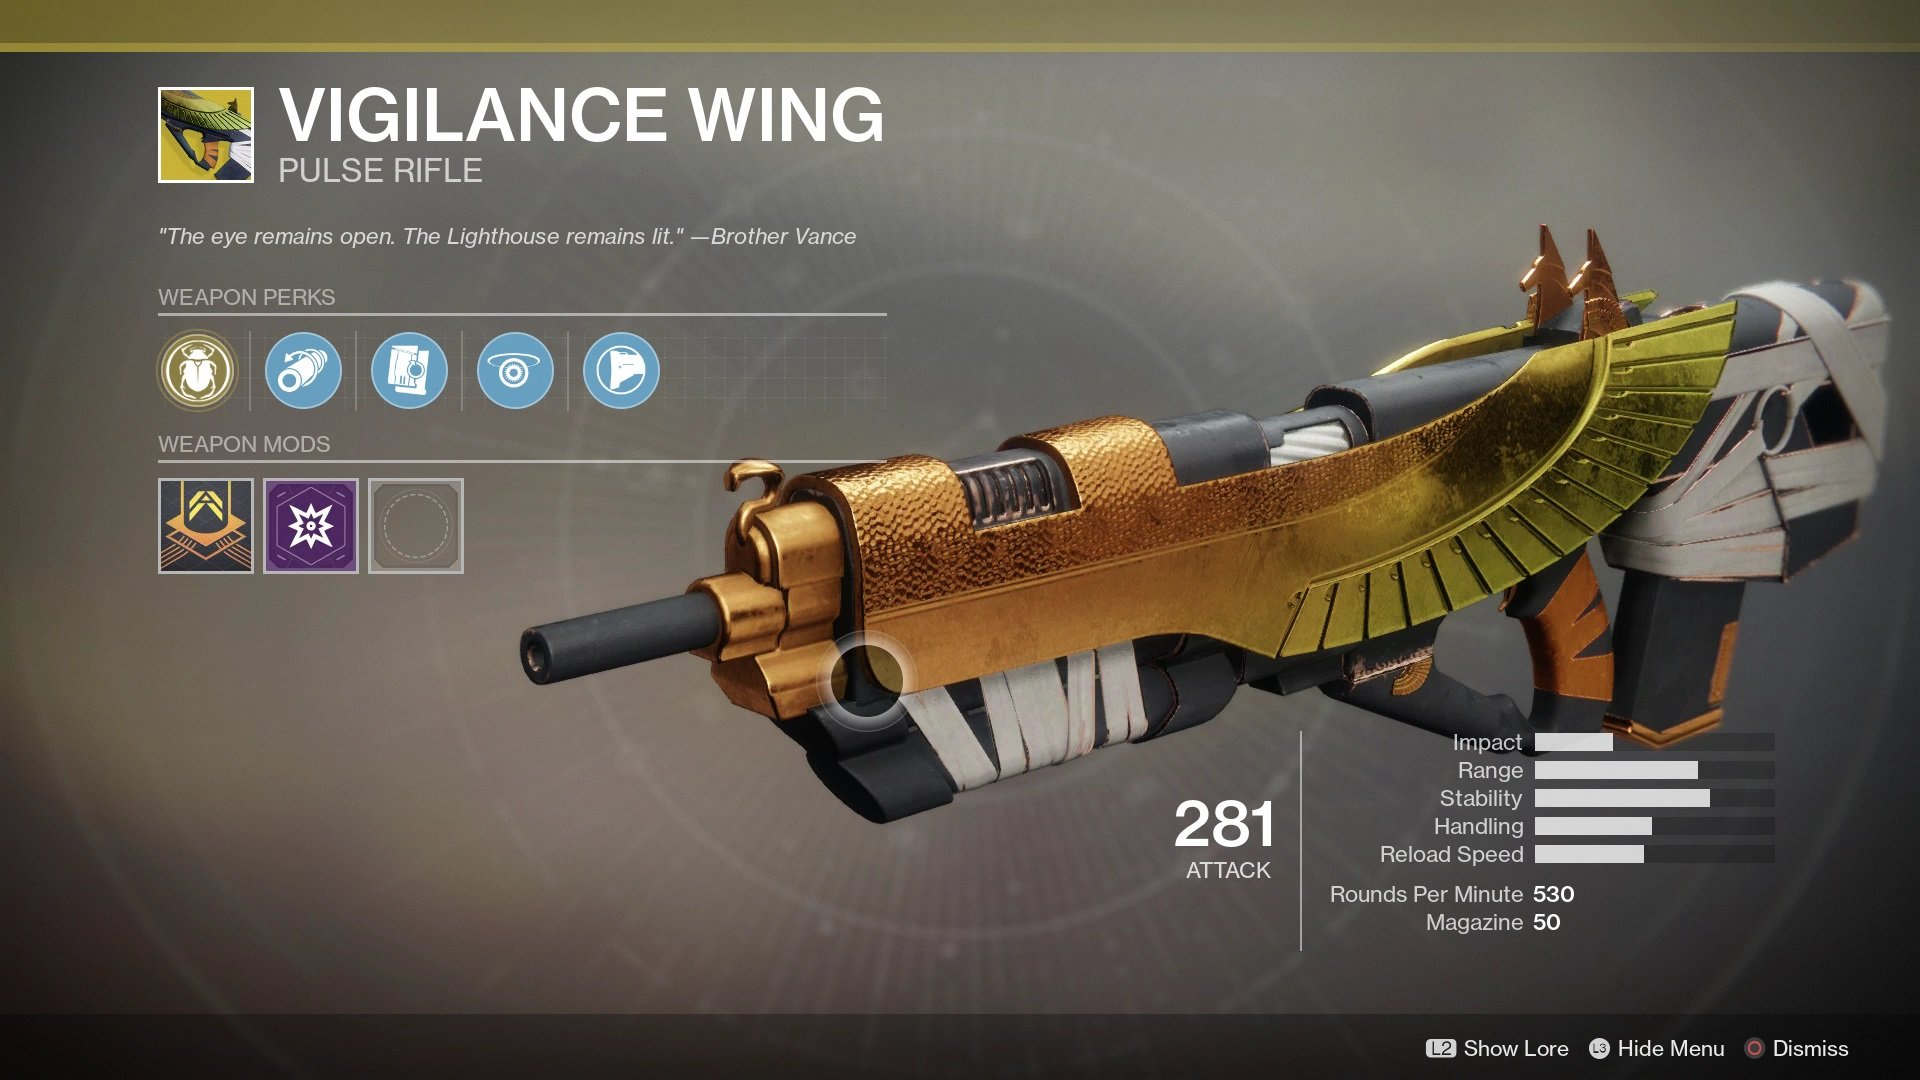 During the week of June 28, Xur has a variety of interesting Exotic items up for sale, including a Vigilance Wing.